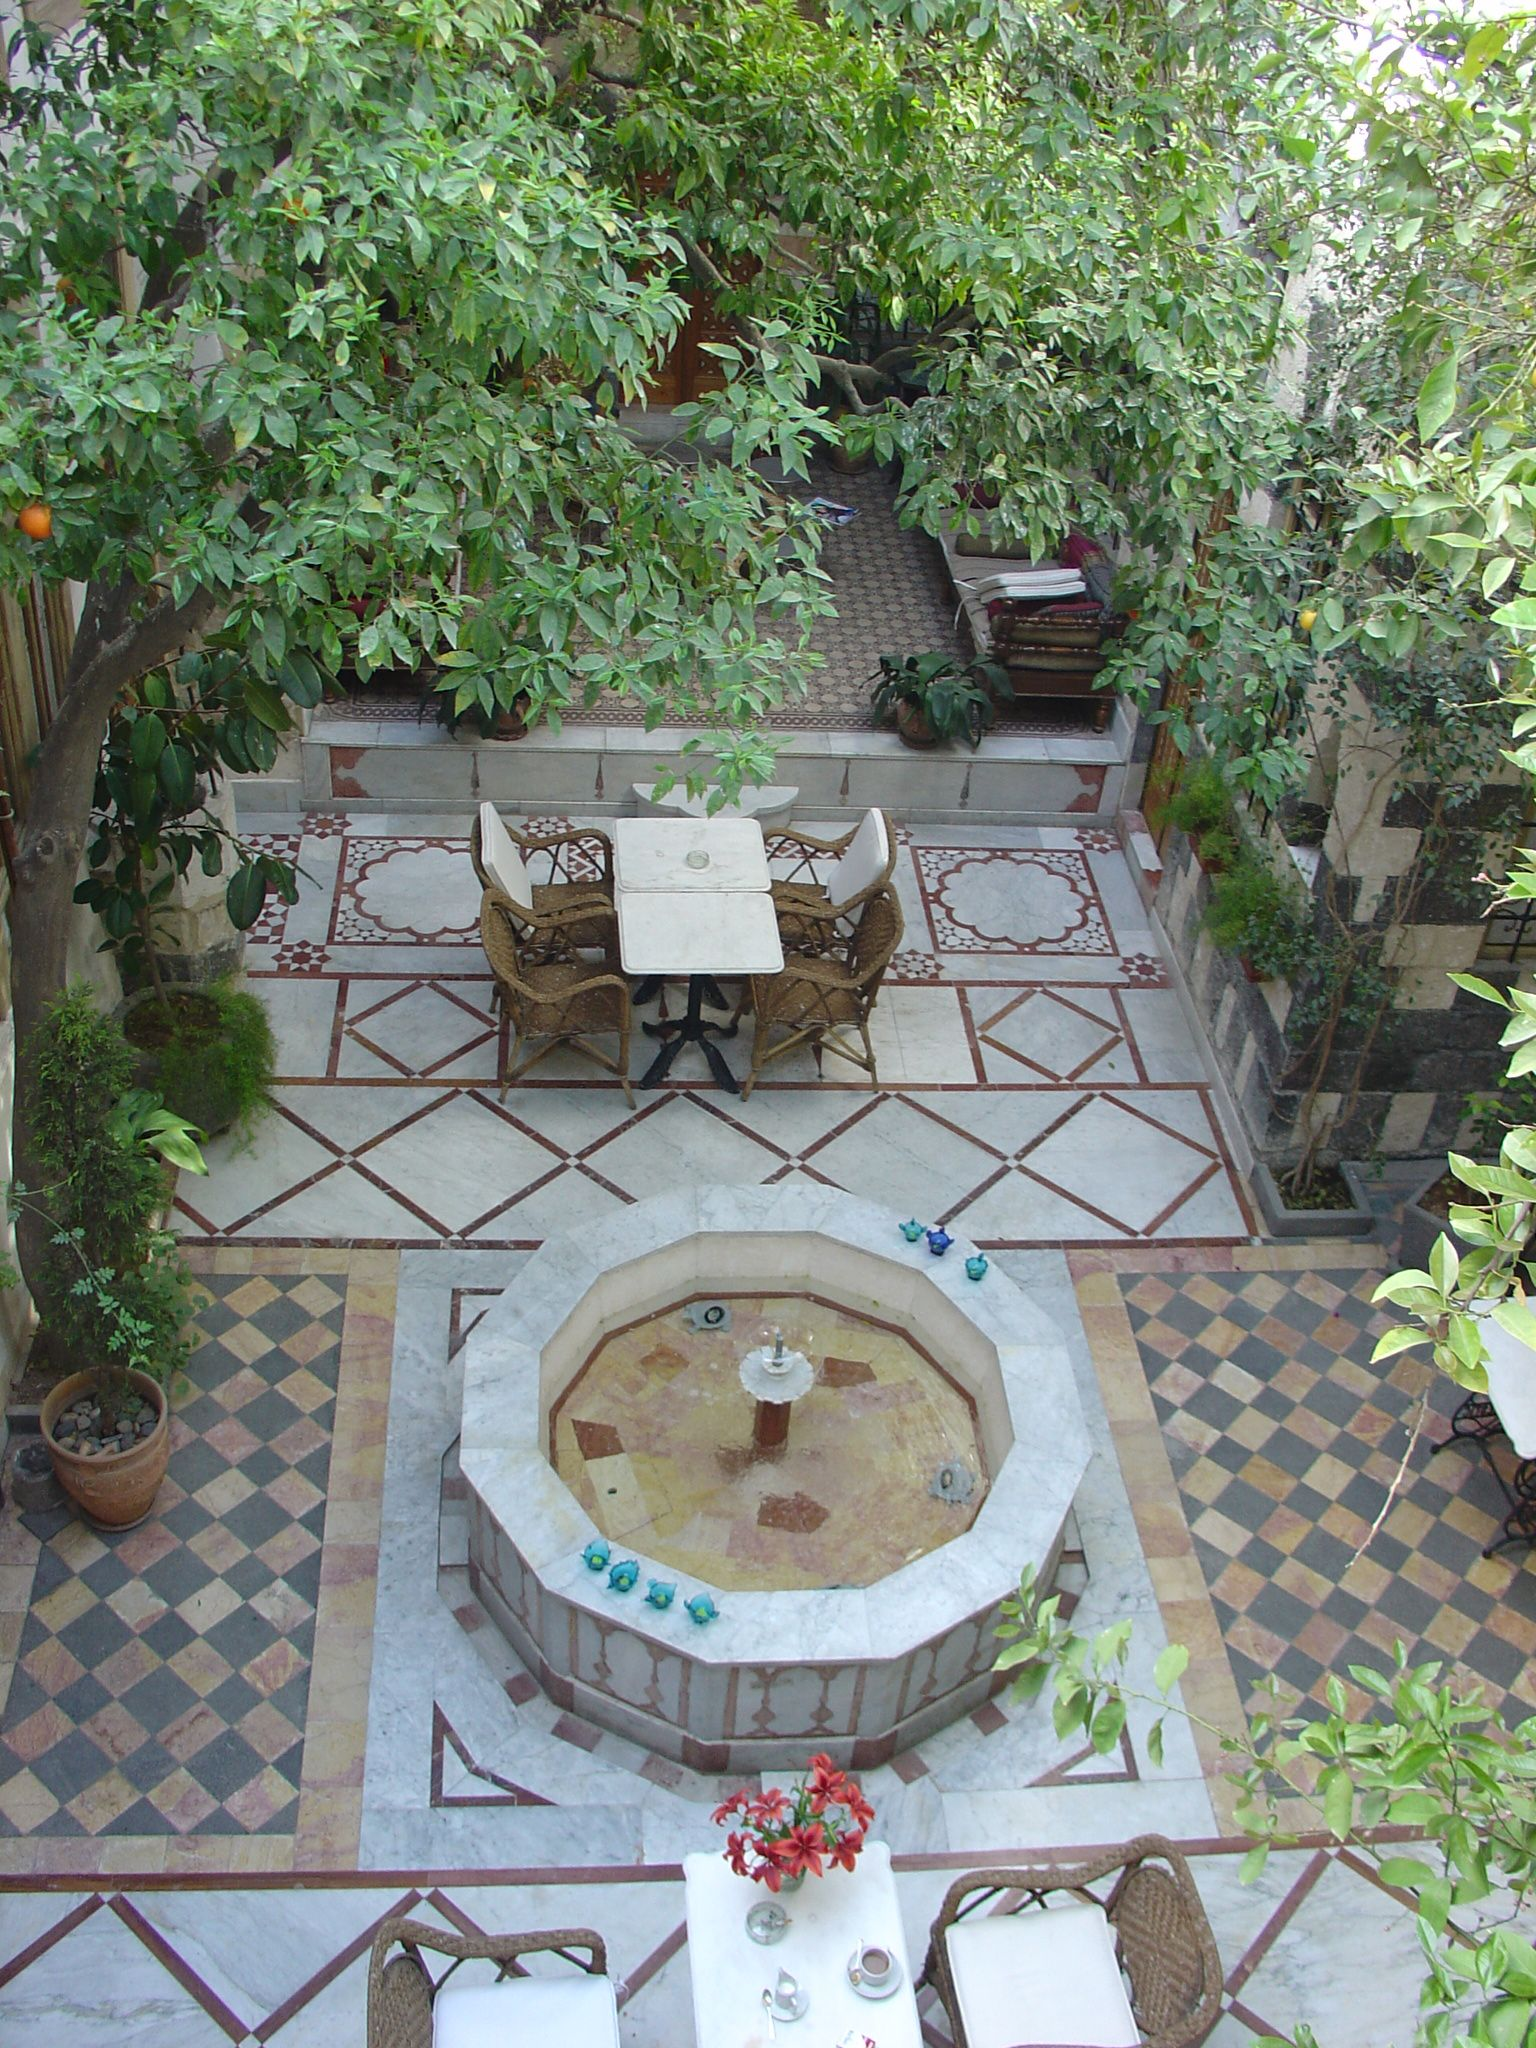 Arab House Damascus Syria Reminds Me Of The House A